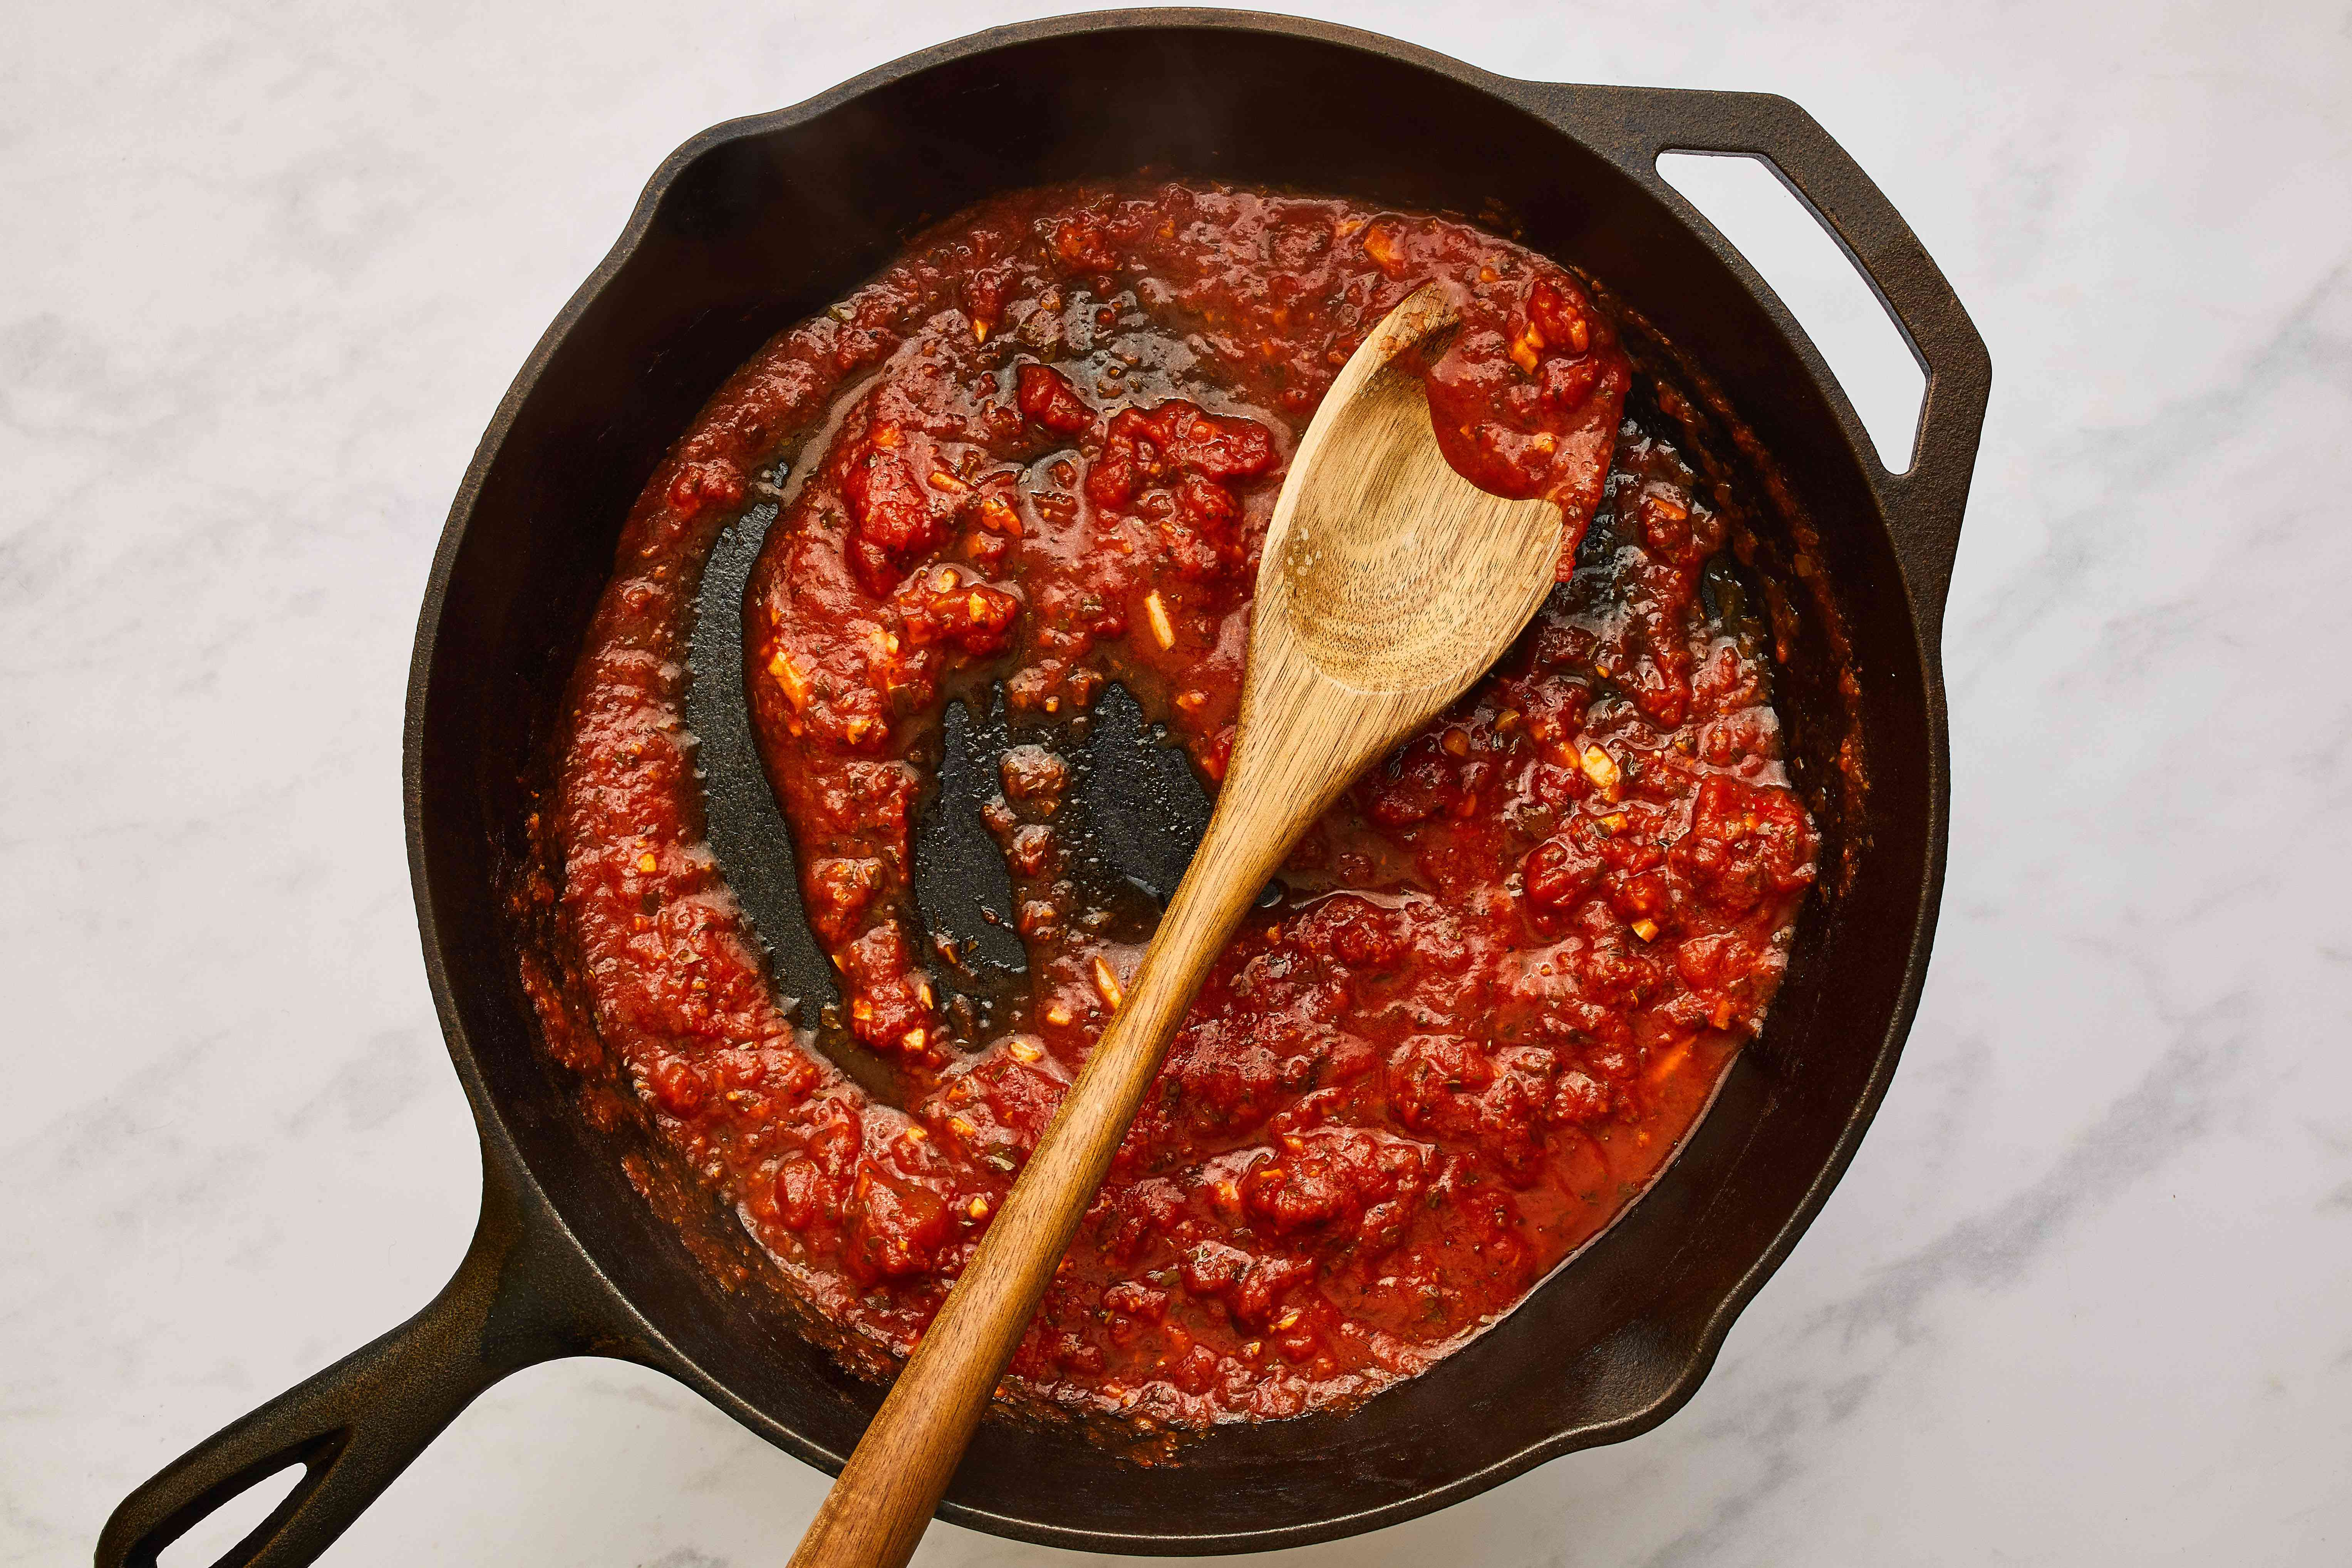 Heat the tomato sauce and garlic in a large saucepan